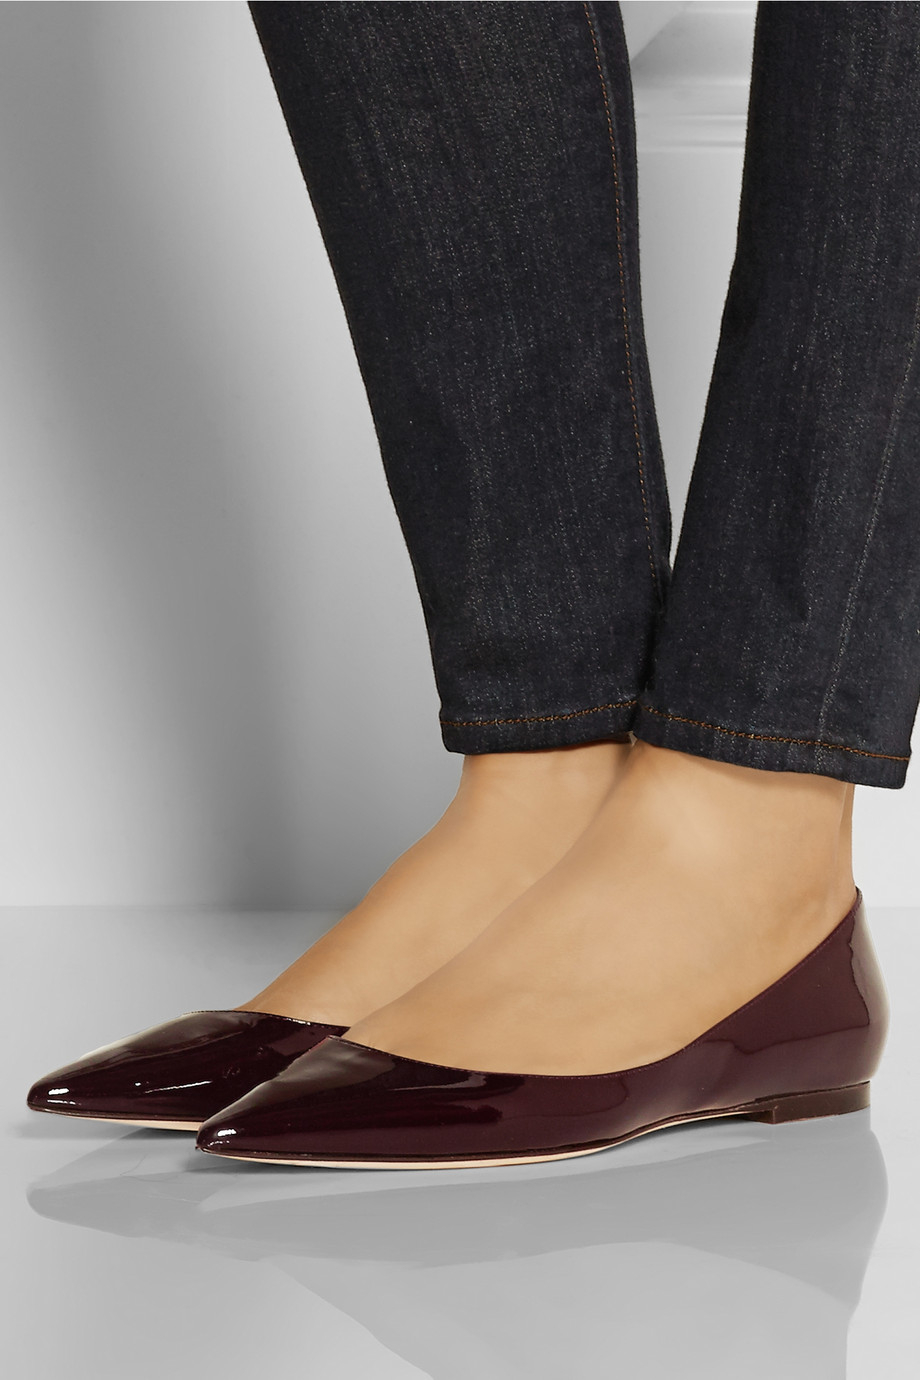 Jimmy Choo Alina Patent Leather Point Toe Flats In Red Lyst